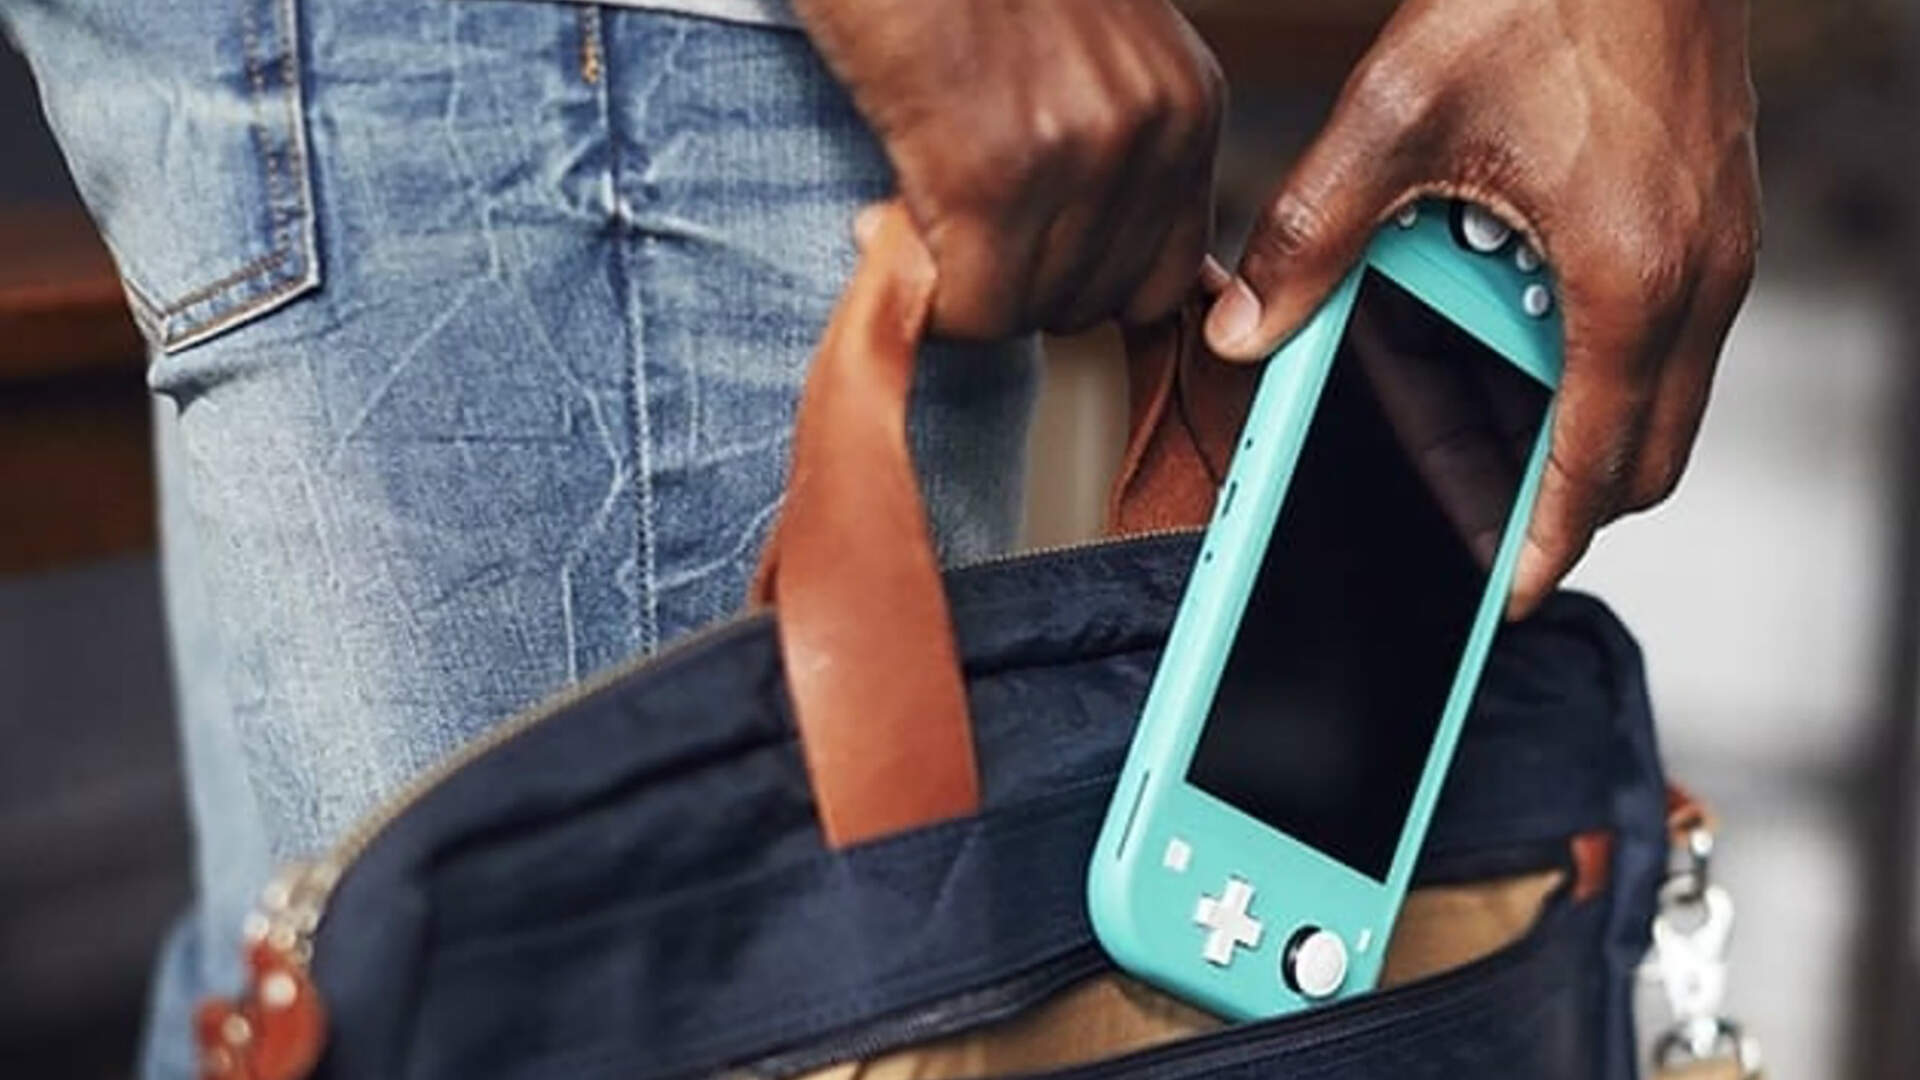 Just Three Months After Launch, One in Three Switch Consoles Sold is a Switch Lite